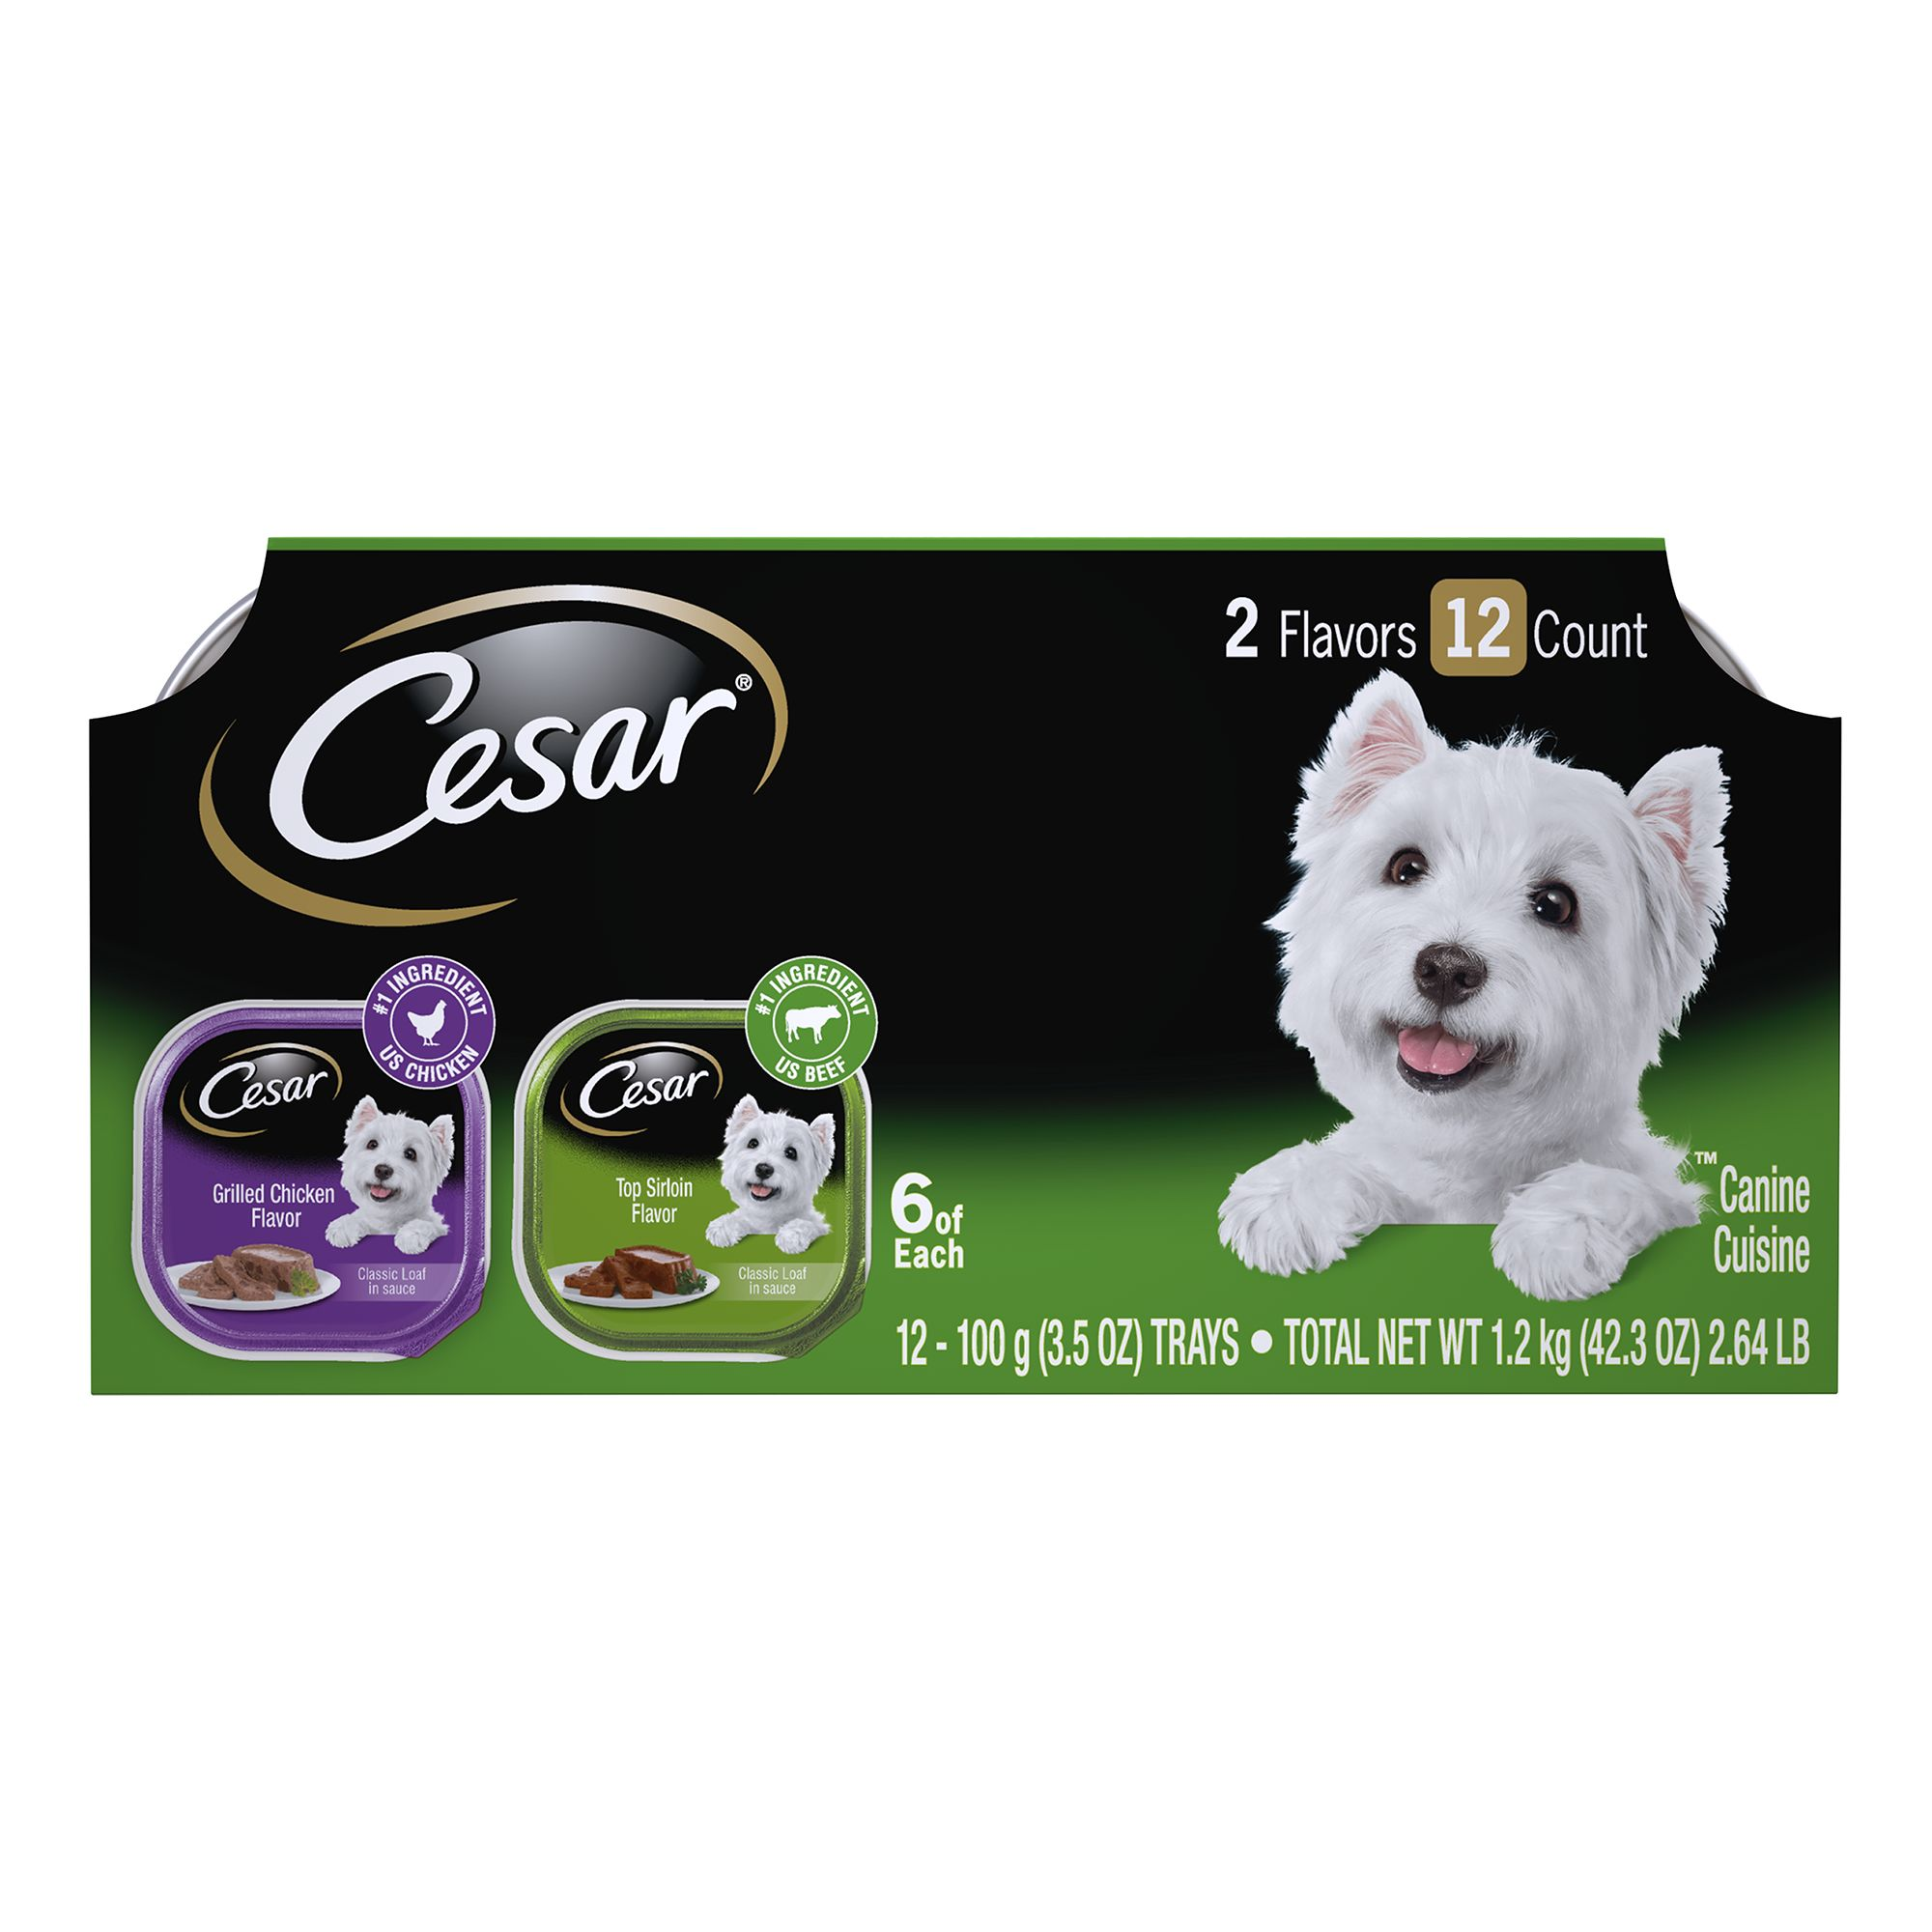 Cesar Canine Cuisine Dog Food - MultiPack size: 3.5 Oz, Variety, Adult, Water 5114494